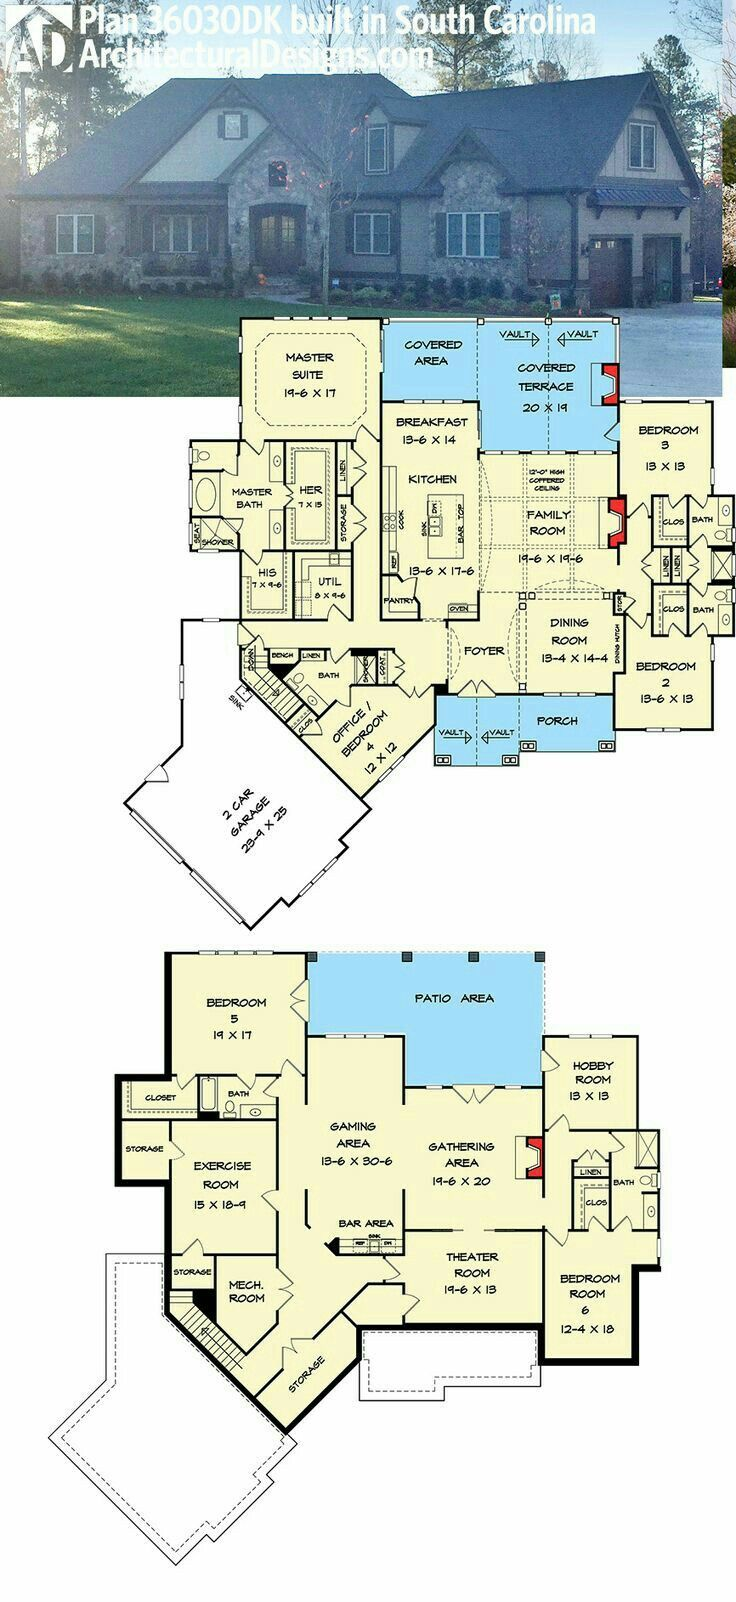 This Is The Perfect House For My Family Architectural Design House Plans Home Design Floor Plans House Floor Plans